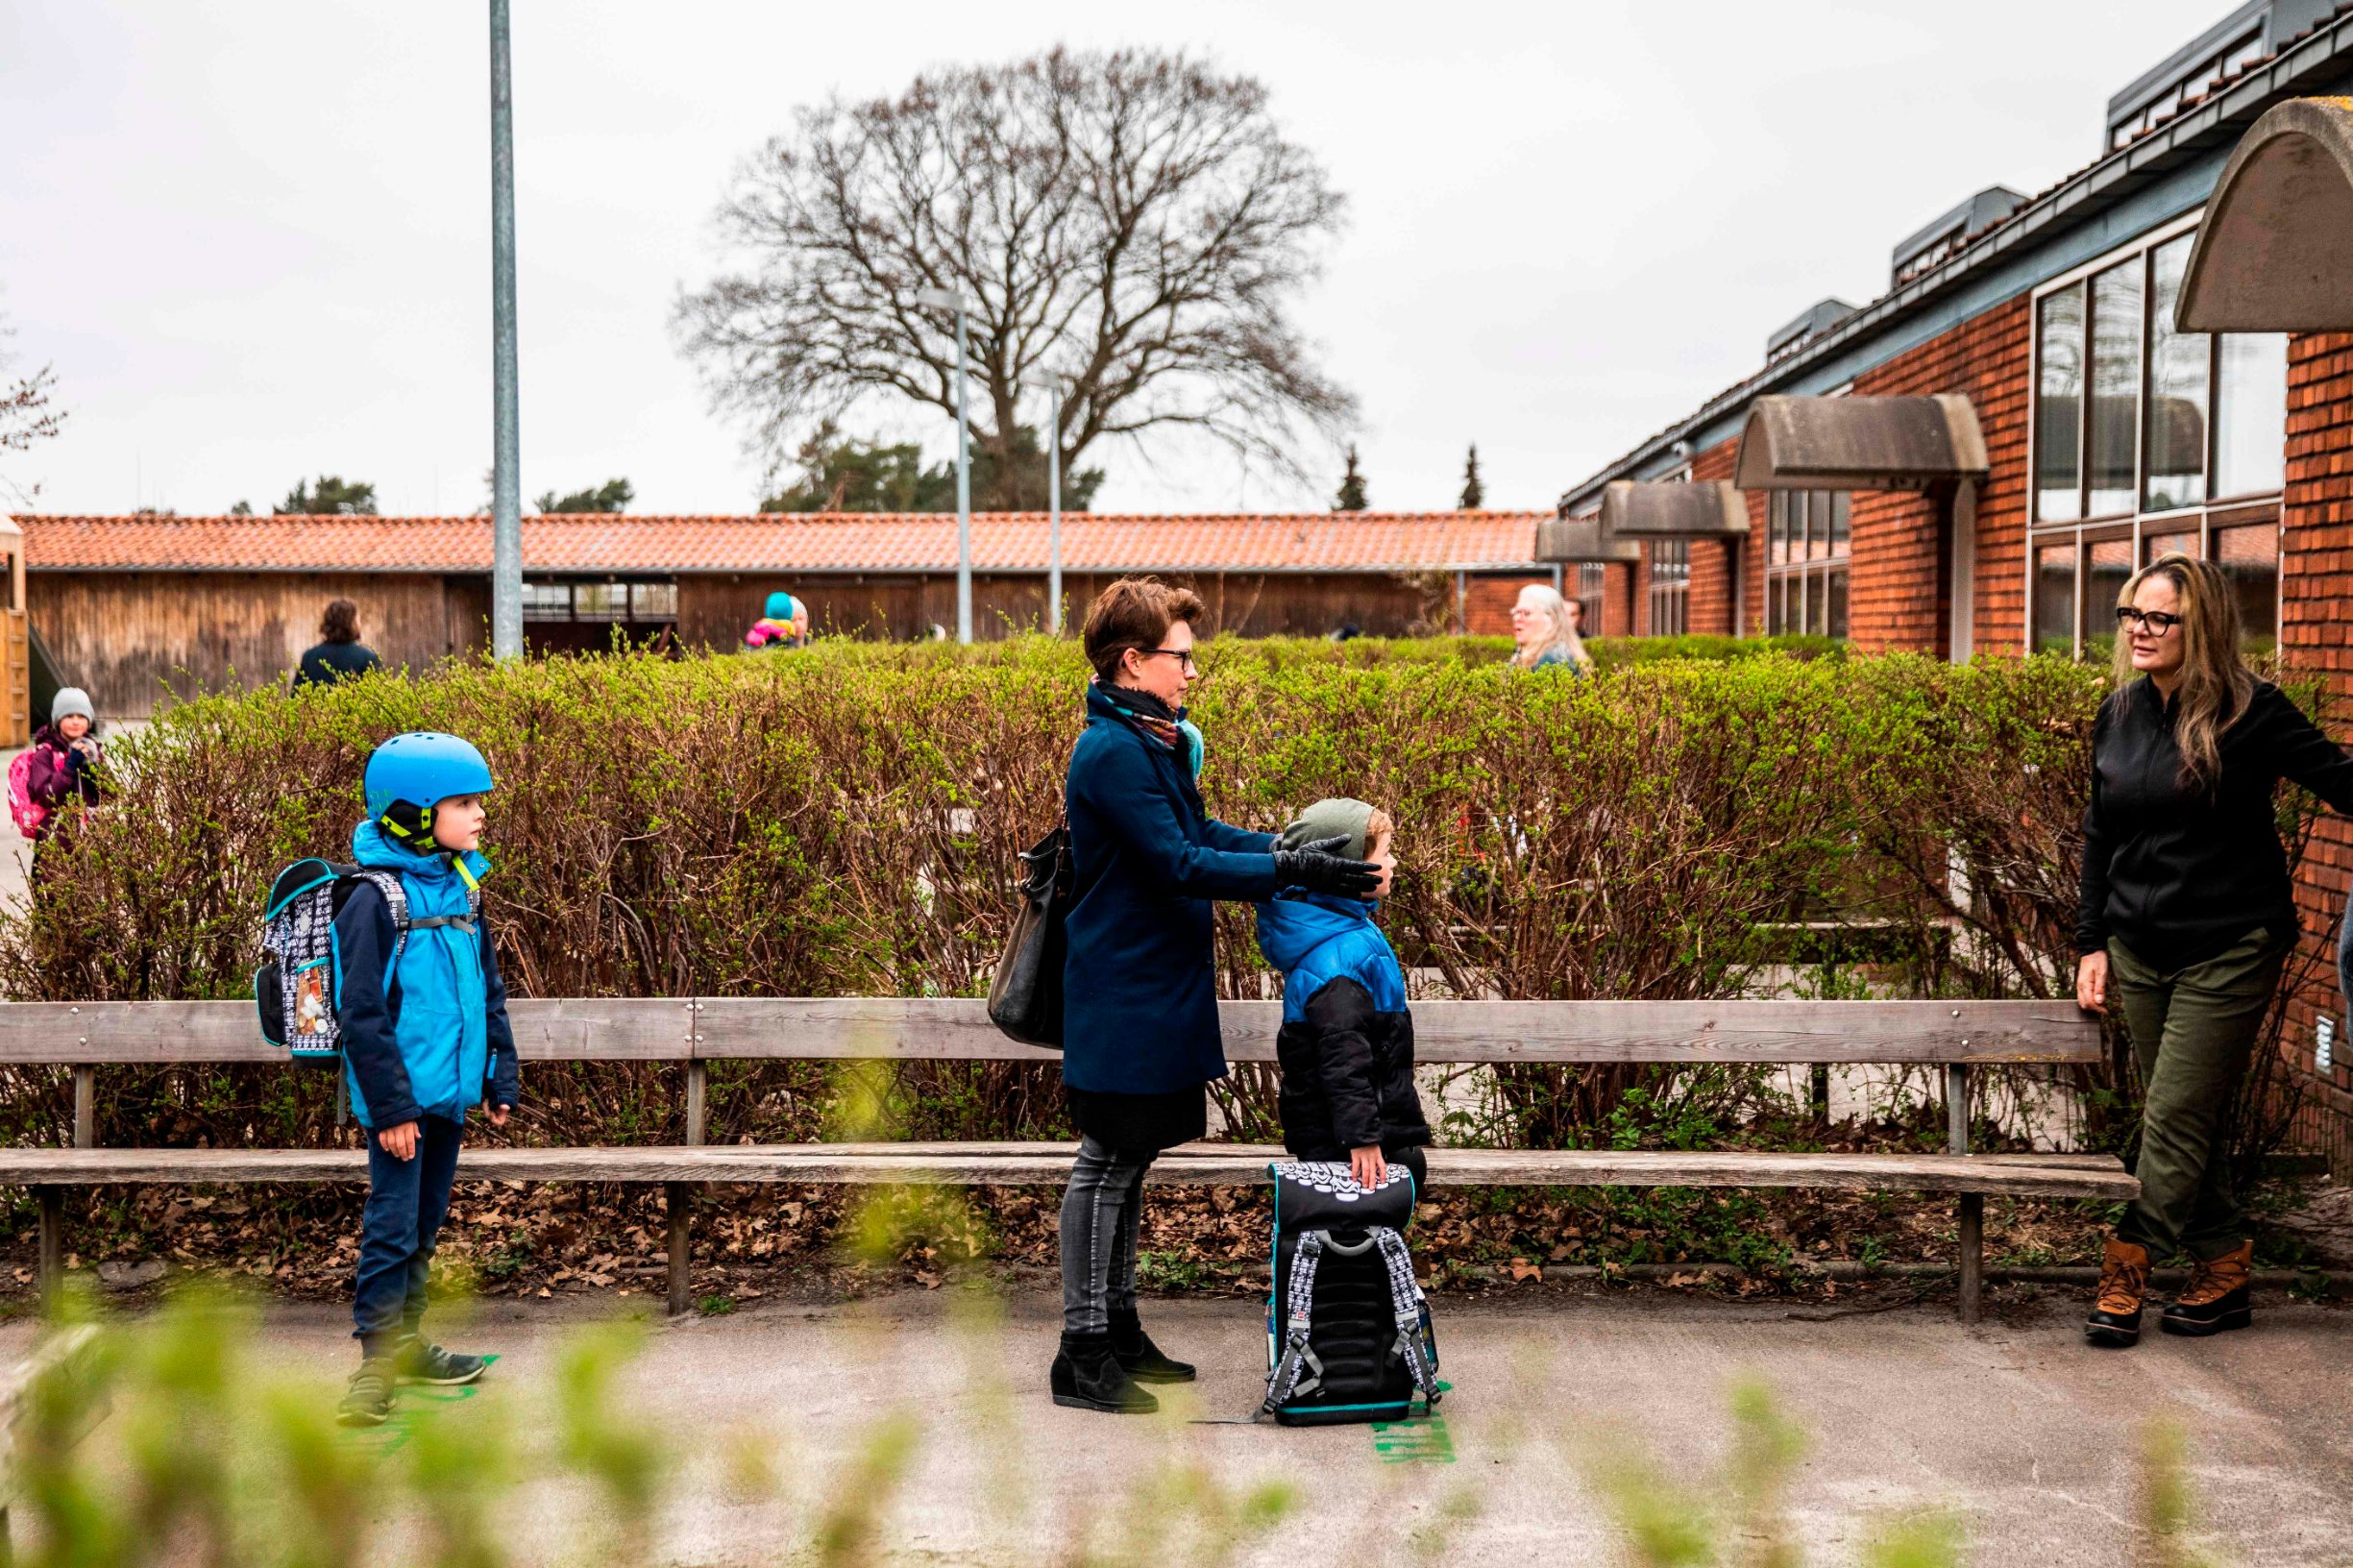 Parents with their children stand in queue waiting to get inside Stengaard School north of Copenhagen, Denmark, on April 15, 2020, after the new coronavirus lockdown. - Denmark began reopening schools on April 15, 2020 for younger children after a month-long closure over the novel coronavirus, becoming the first country in Europe to do so. Nurseries, kindergartens and primary schools were reopening, according to an AFP correspondent, after they were closed on March 12, 2020 in an effort to curb the COVID-19 pandemic. (Photo by Ólafur Steinar Gestsson / Ritzau Scanpix / AFP) / Denmark OUT